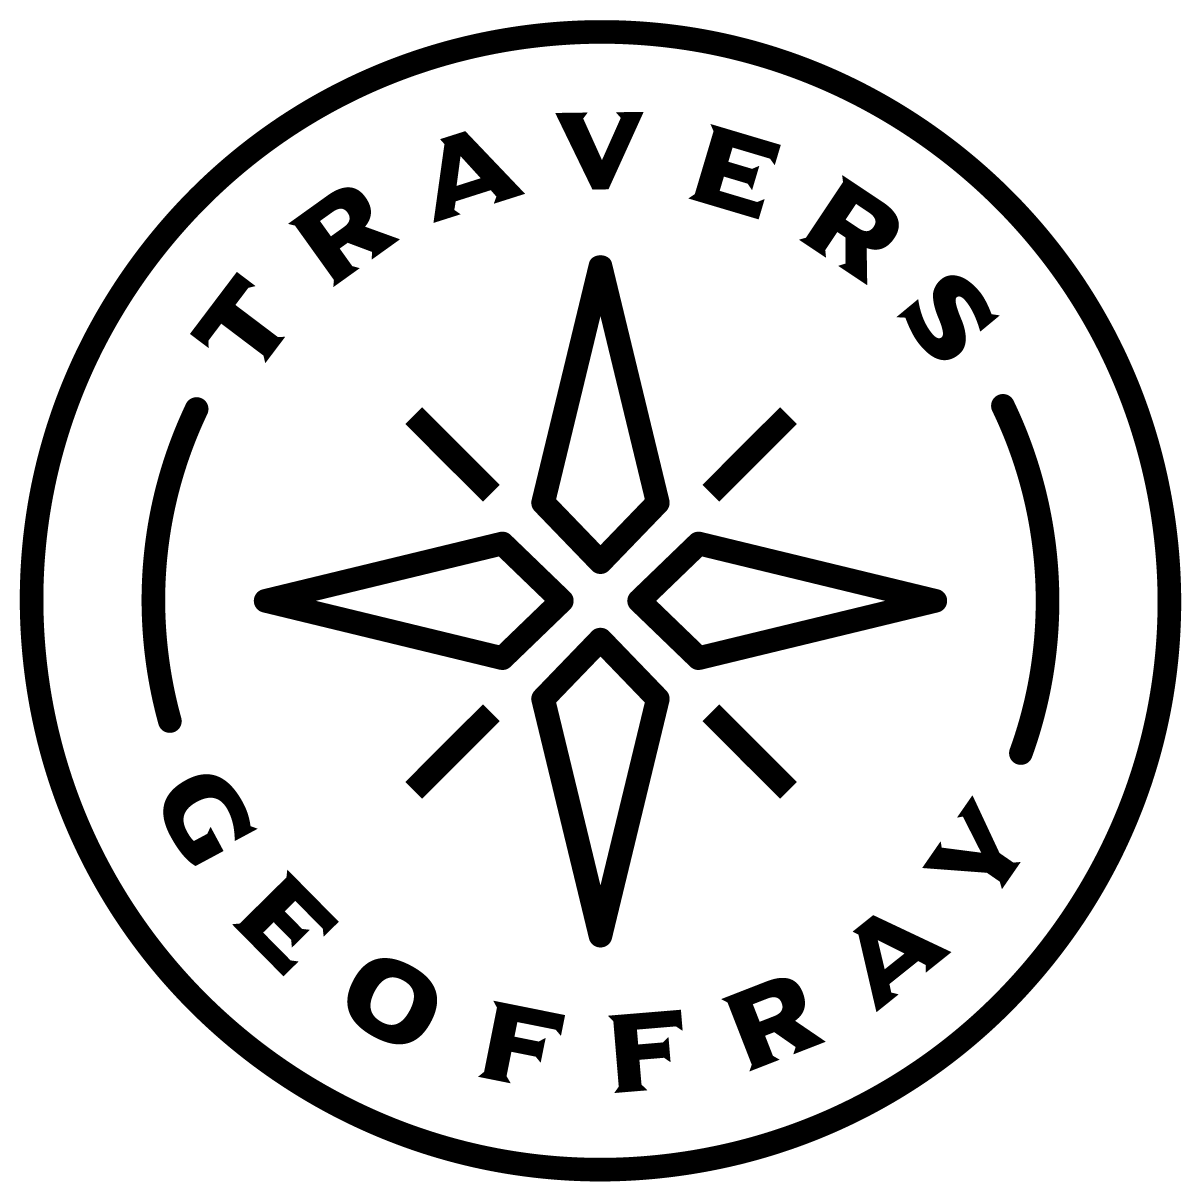 Travers Geoffray